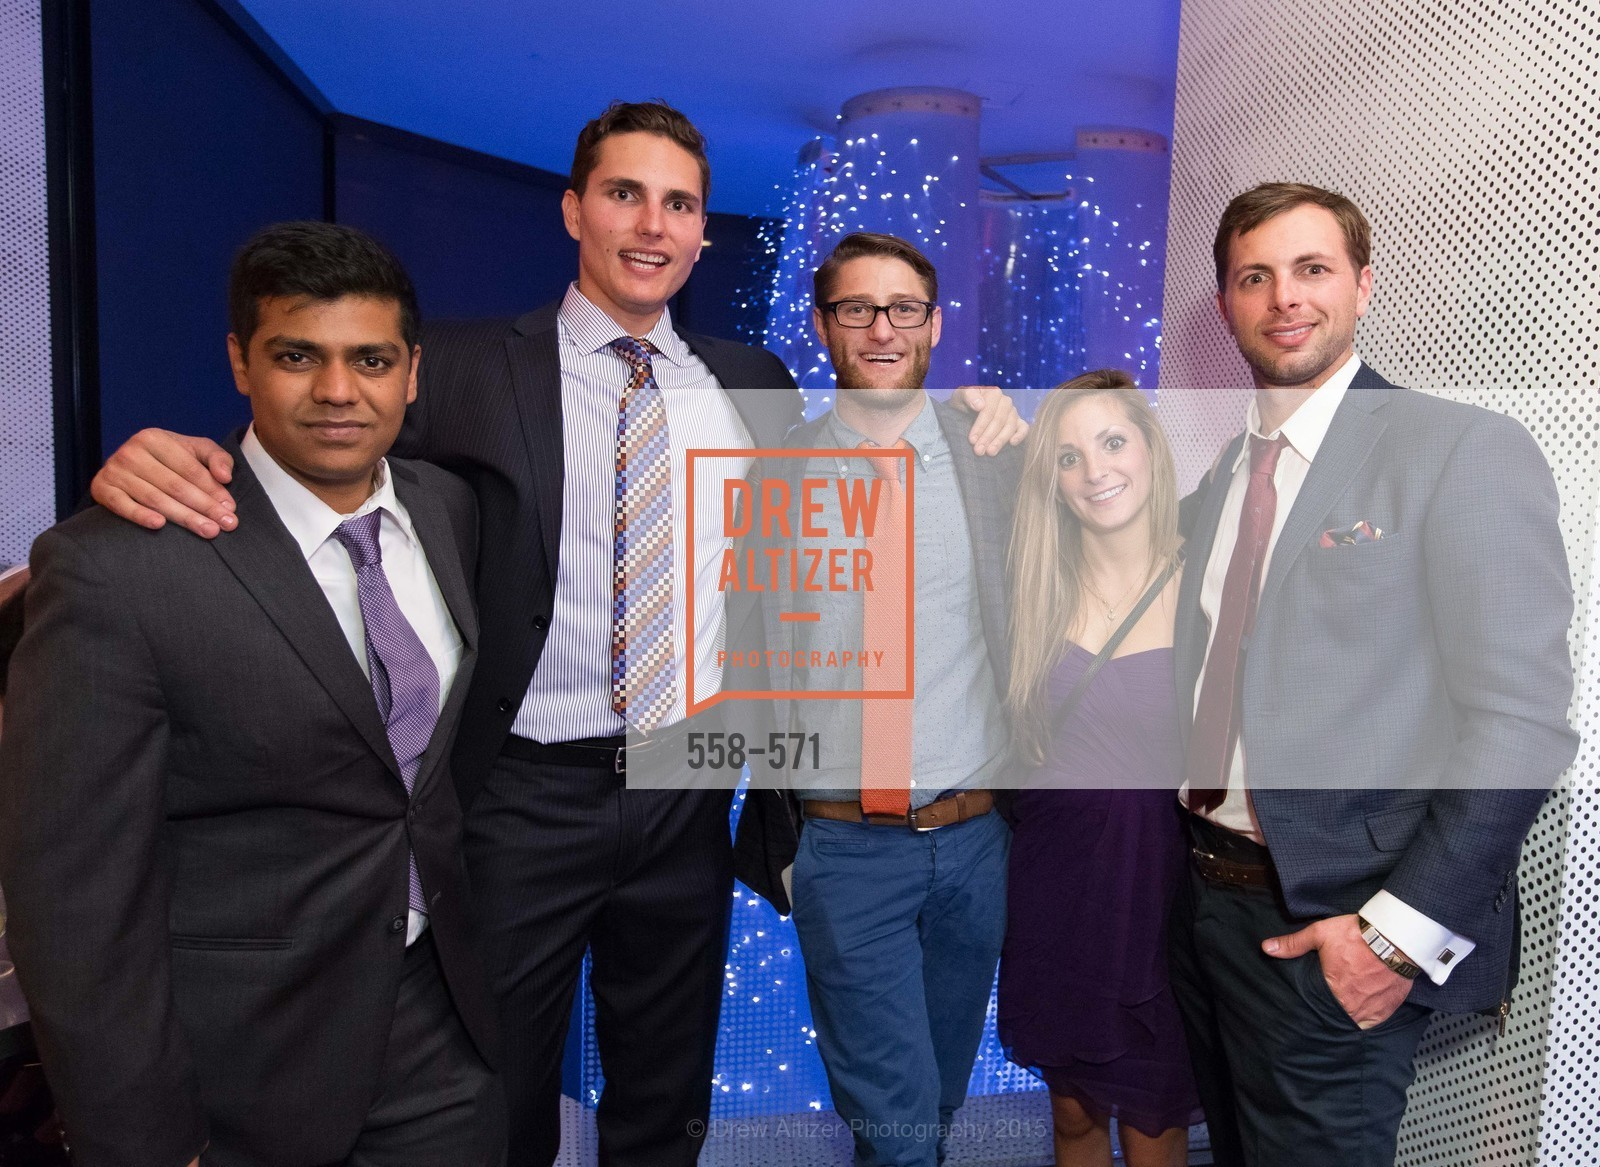 Prasheel Vissaprada, Steve Rogers, Josh Breuner, Malaena Waldman, Nick Ghirardelli, The 10th Annual San Francisco Social, W Hotel. 181 3rd St, November 21st, 2015,Drew Altizer, Drew Altizer Photography, full-service event agency, private events, San Francisco photographer, photographer California